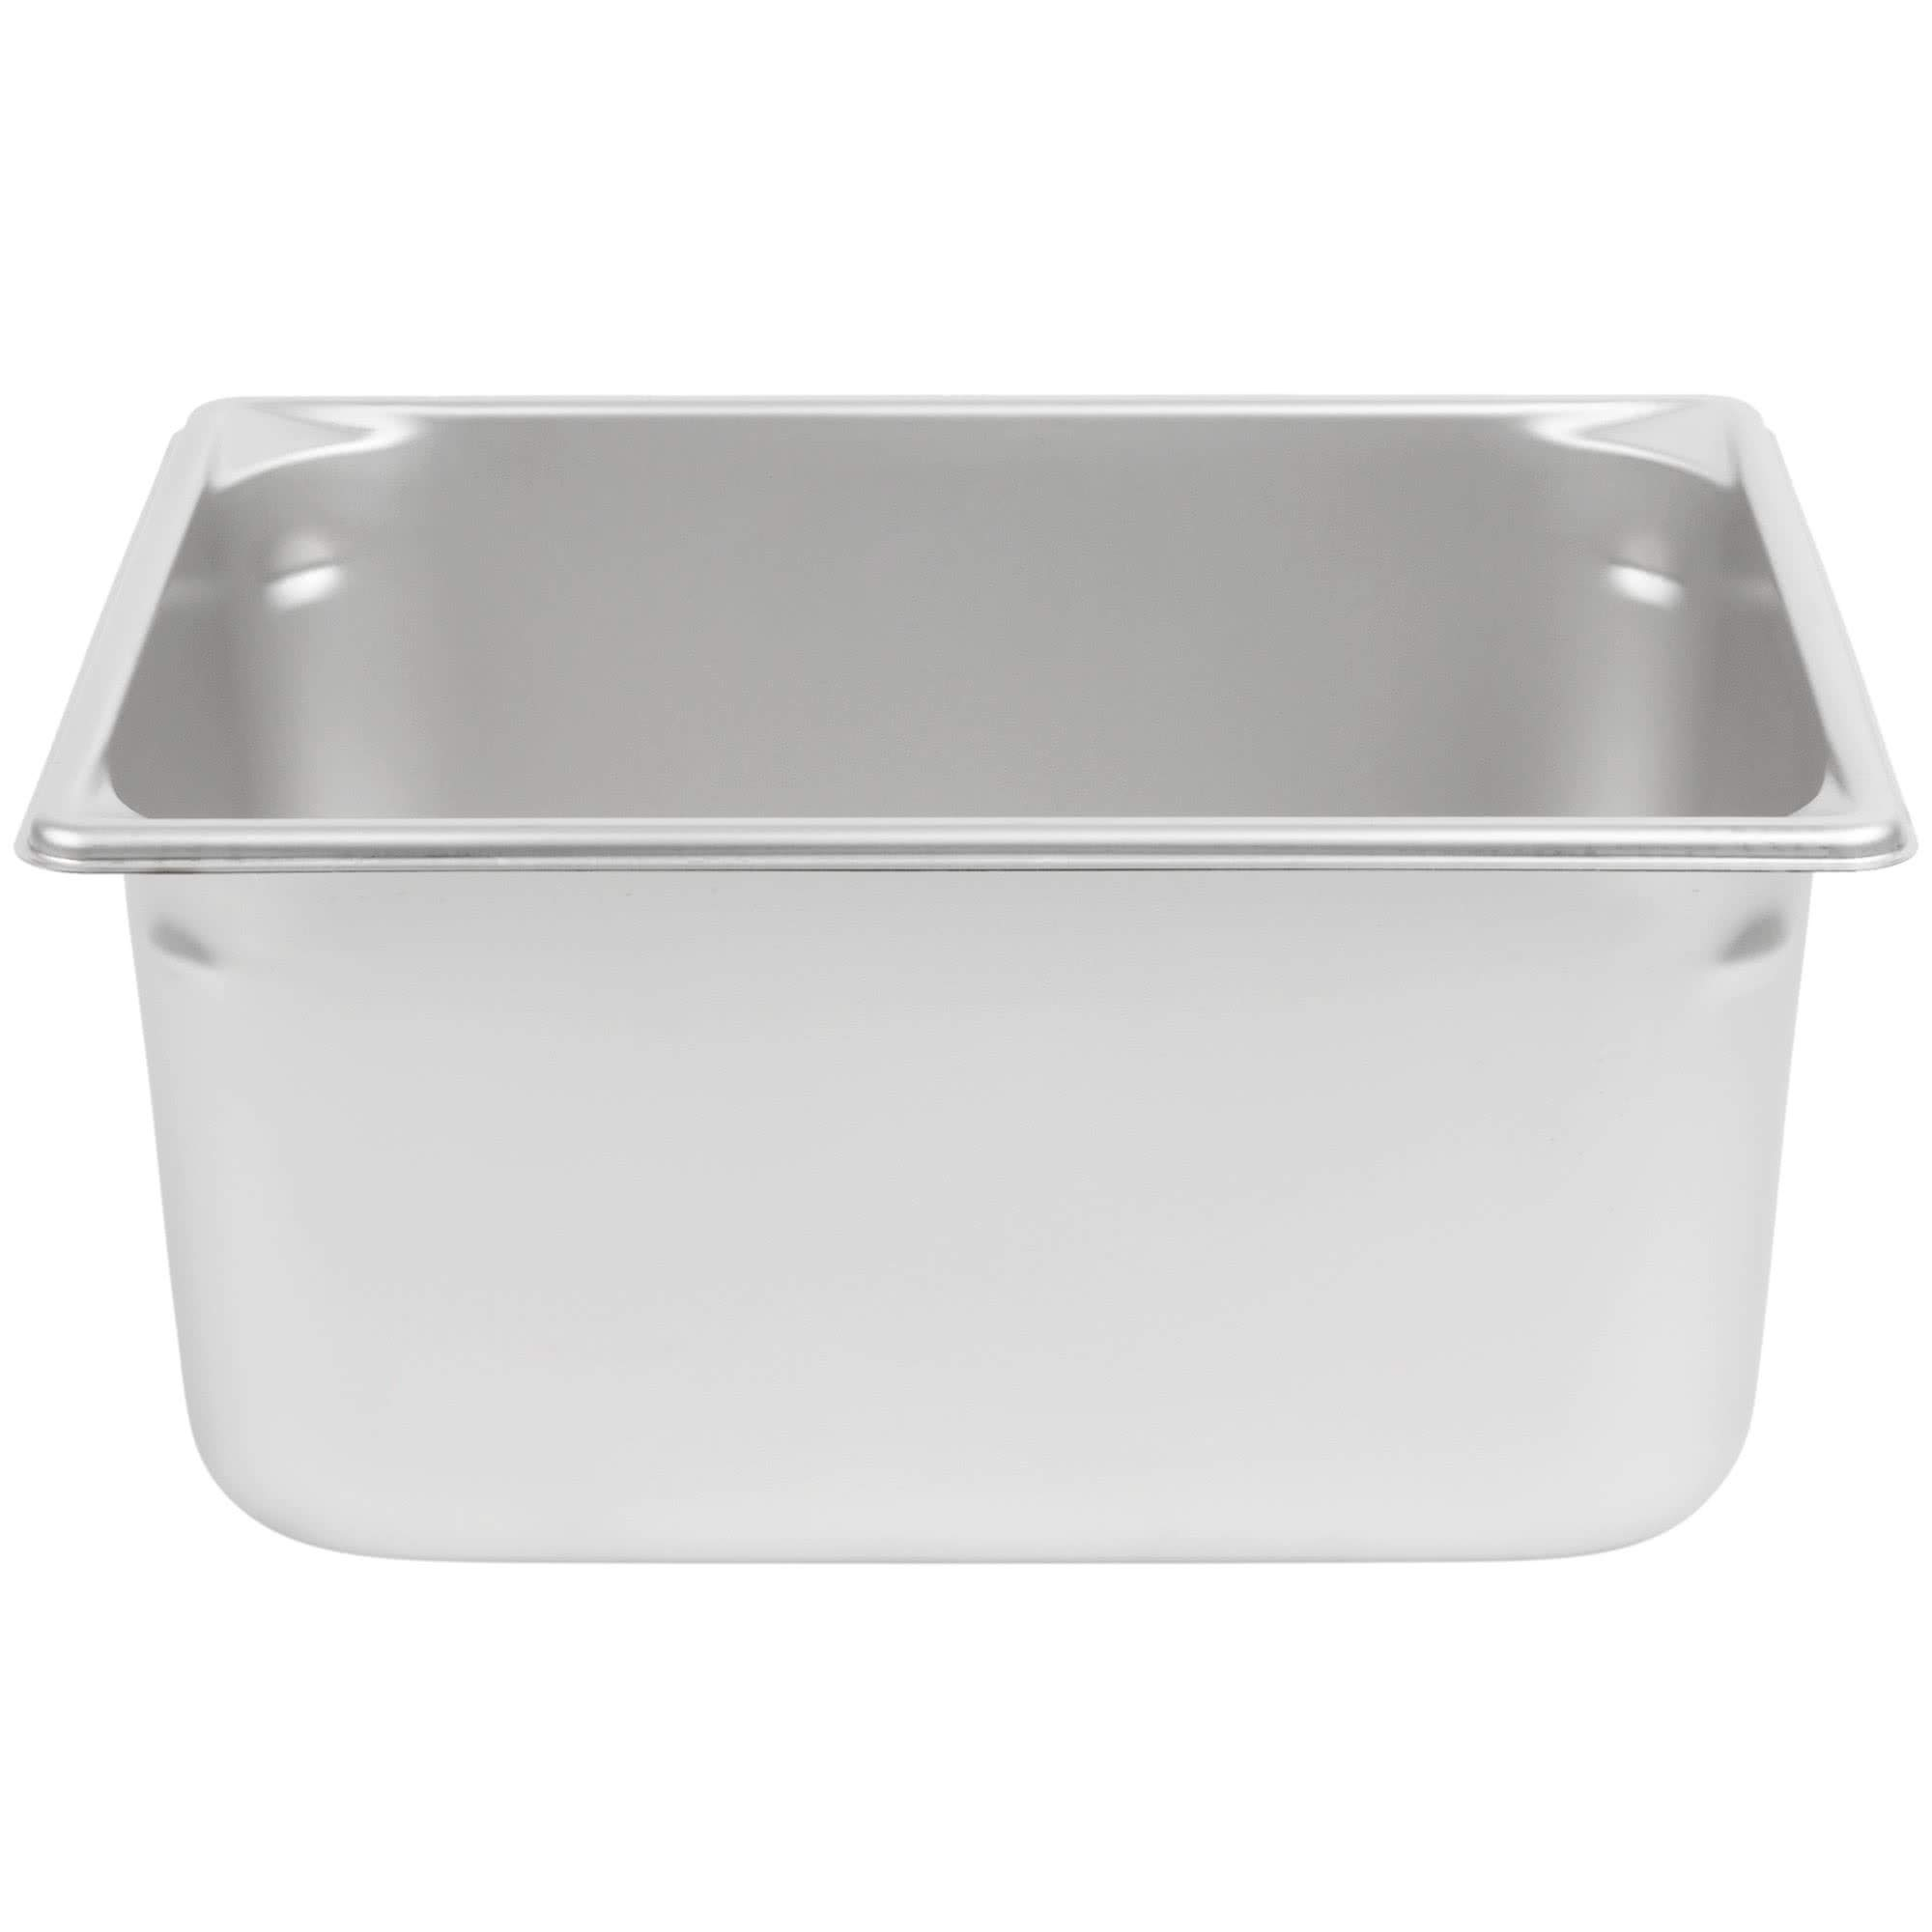 TableTop King 30262 Super Pan V 1/2 Size Anti-Jam Stainless Steel Steam Table/Hotel Pan - 6'' Deep by TableTop King